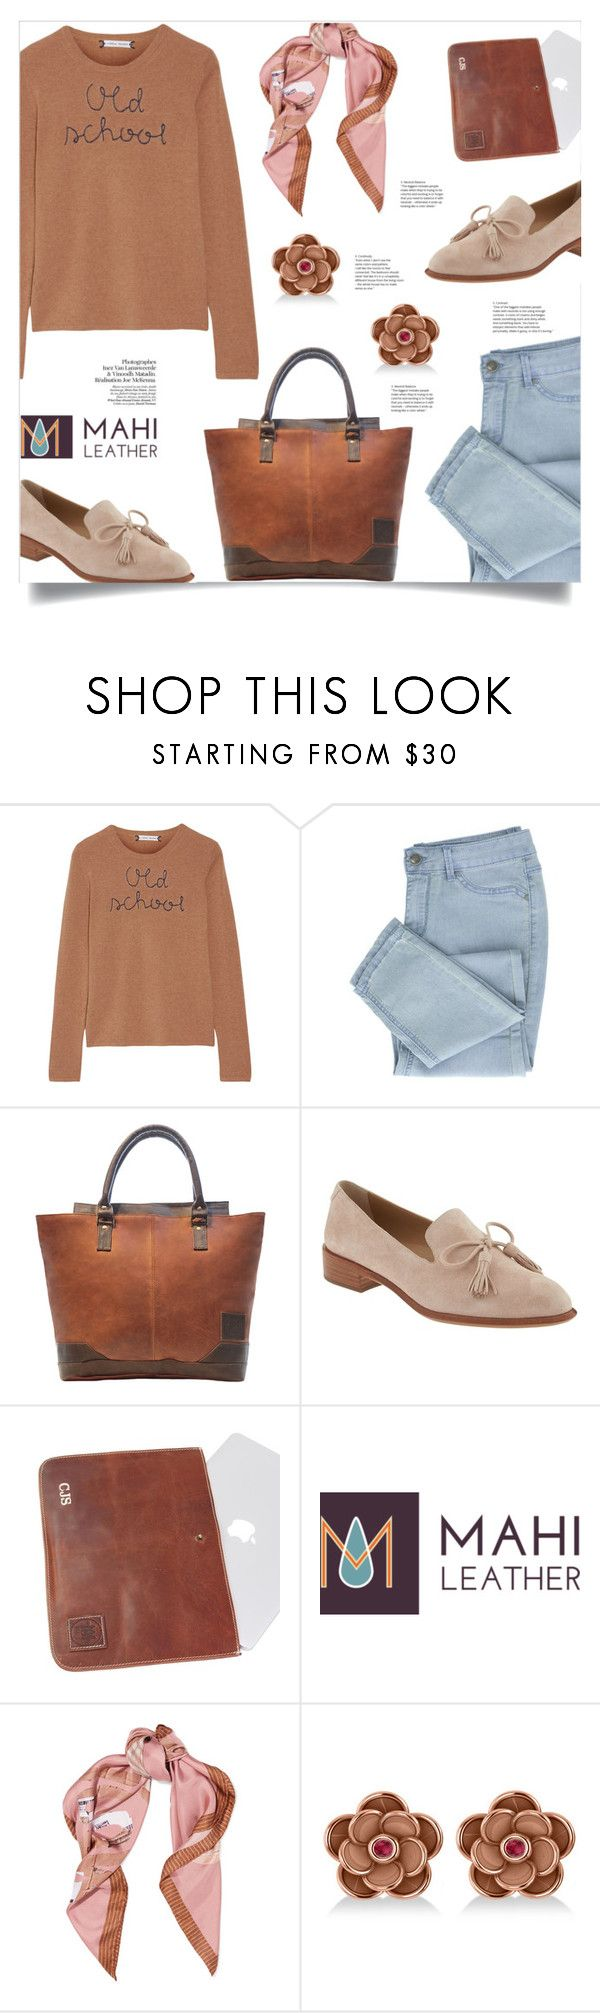 """""""#MAHILEATHER"""" by mahafromkailash ❤ liked on Polyvore featuring Lingua Franca, Banana Republic, Moschino, Allurez, LeatherBag, handcrafted, handmadebag, mahileather and exqlusivegift"""